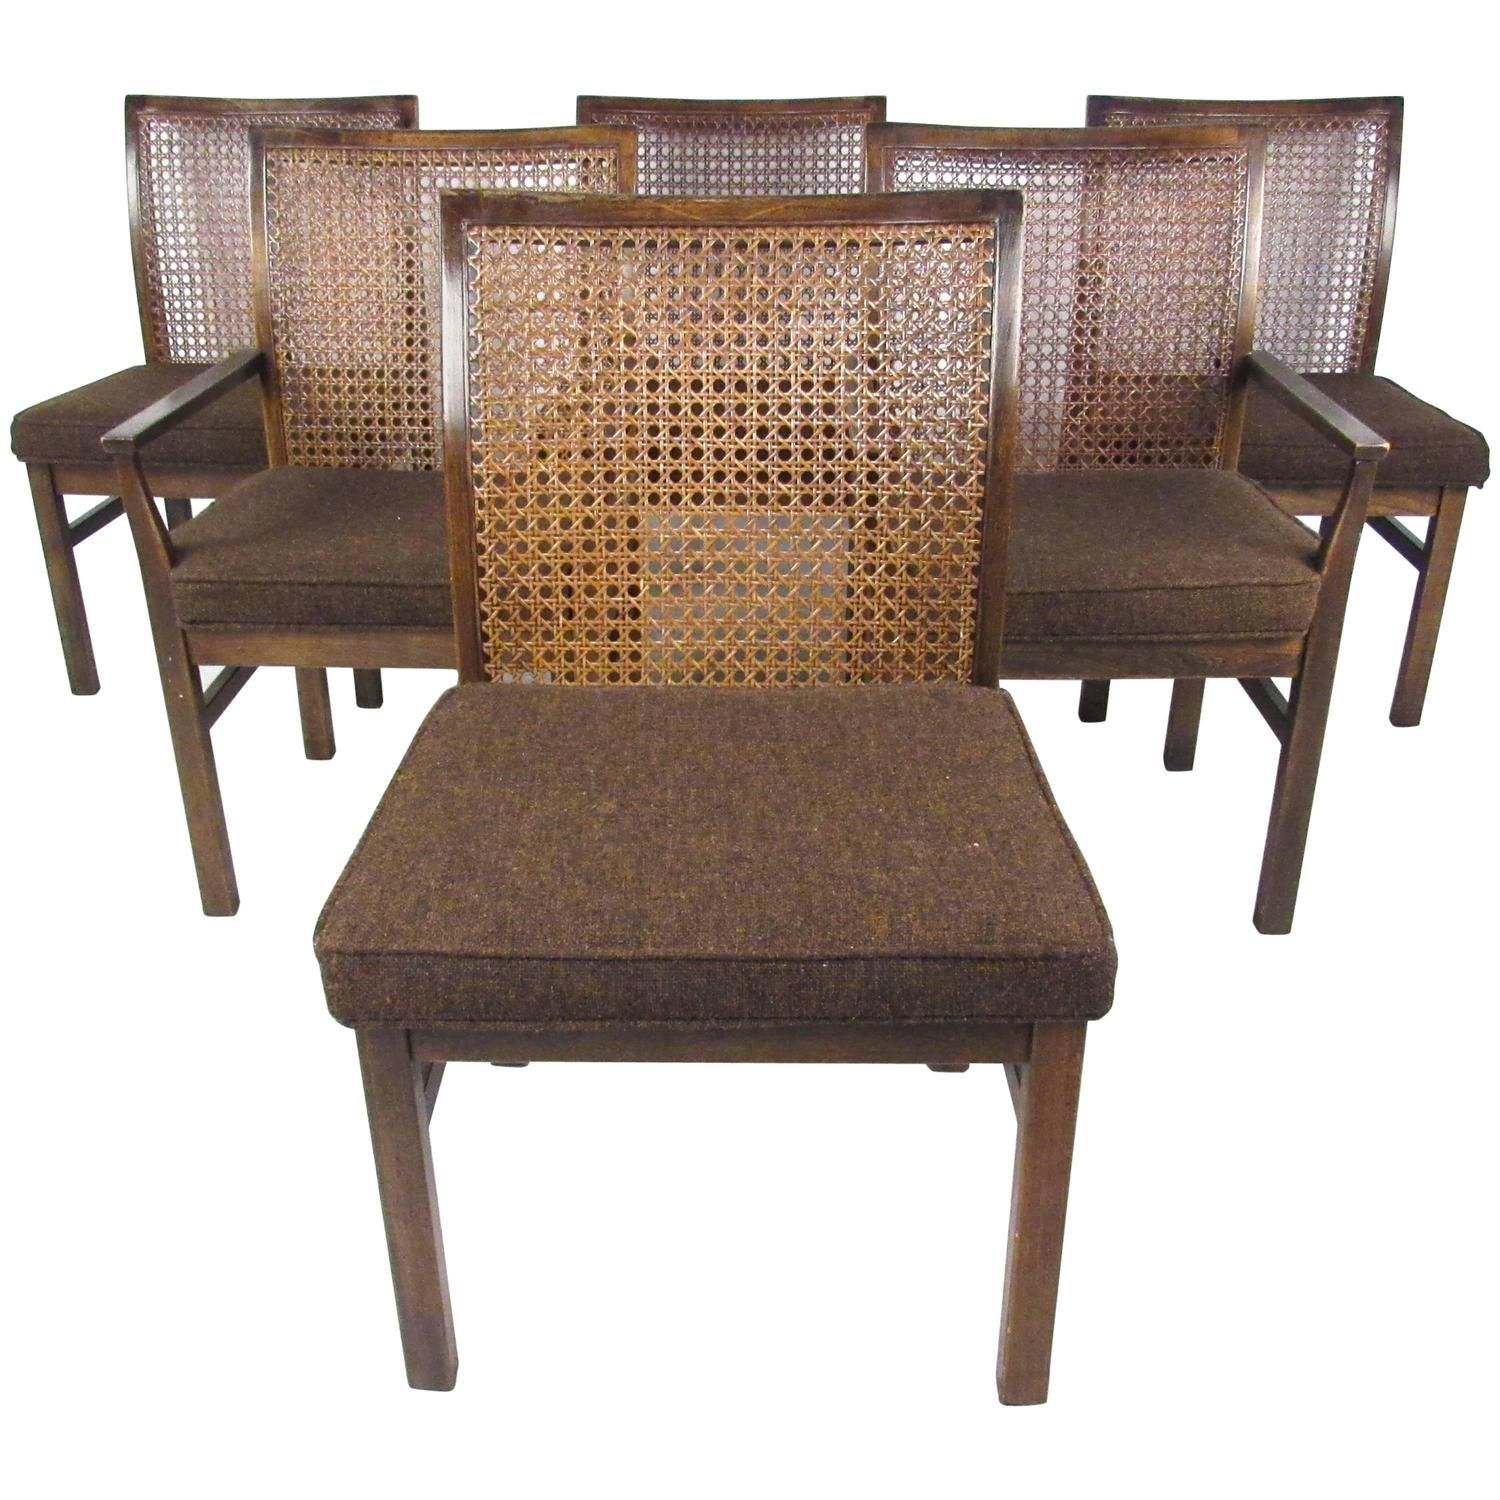 Set Of Six Midcentury Modern Cane Back Dining Chairslane Endearing Dining Room Chairs Mid Century Modern Design Inspiration